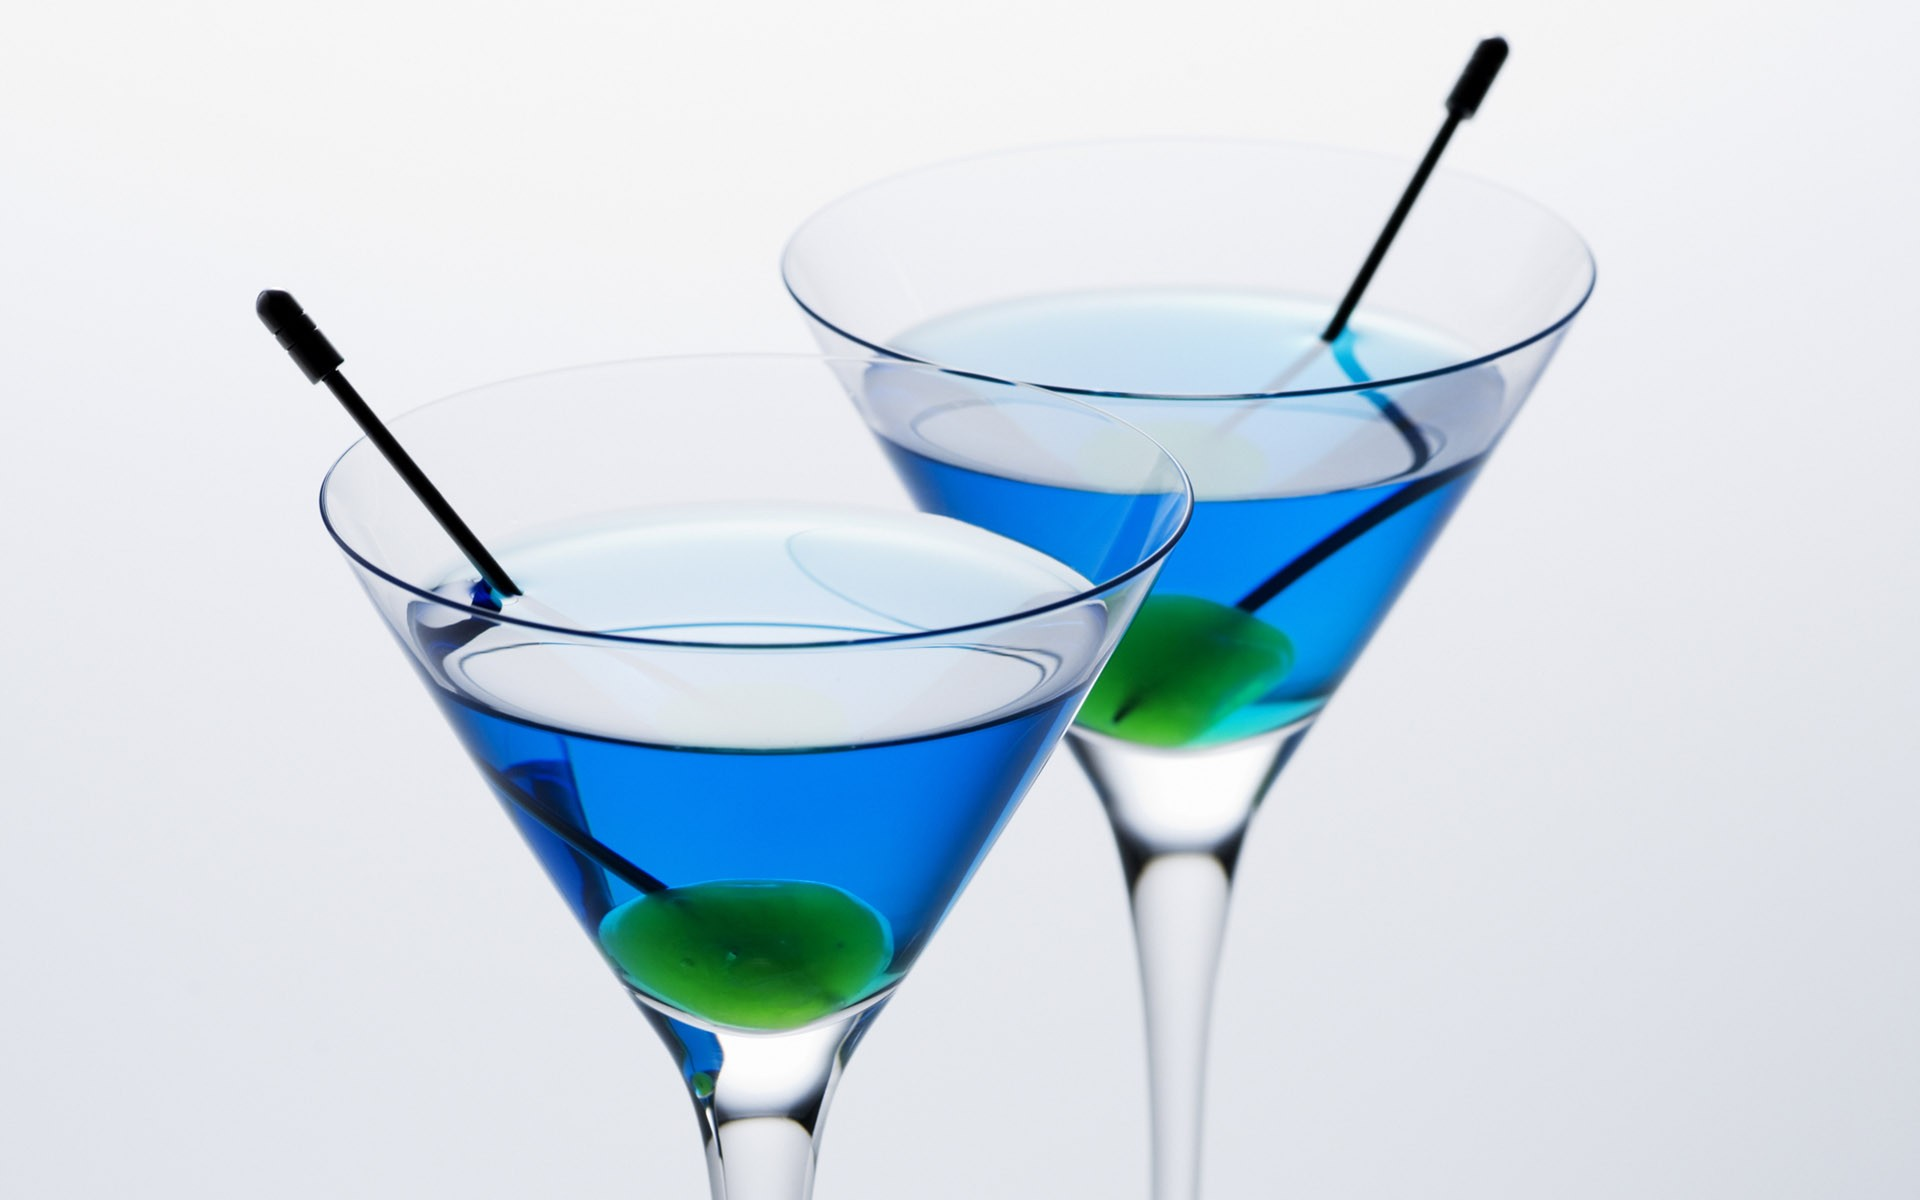 Martini | Martini Images, Pictures, Wallpapers on BsnSCB